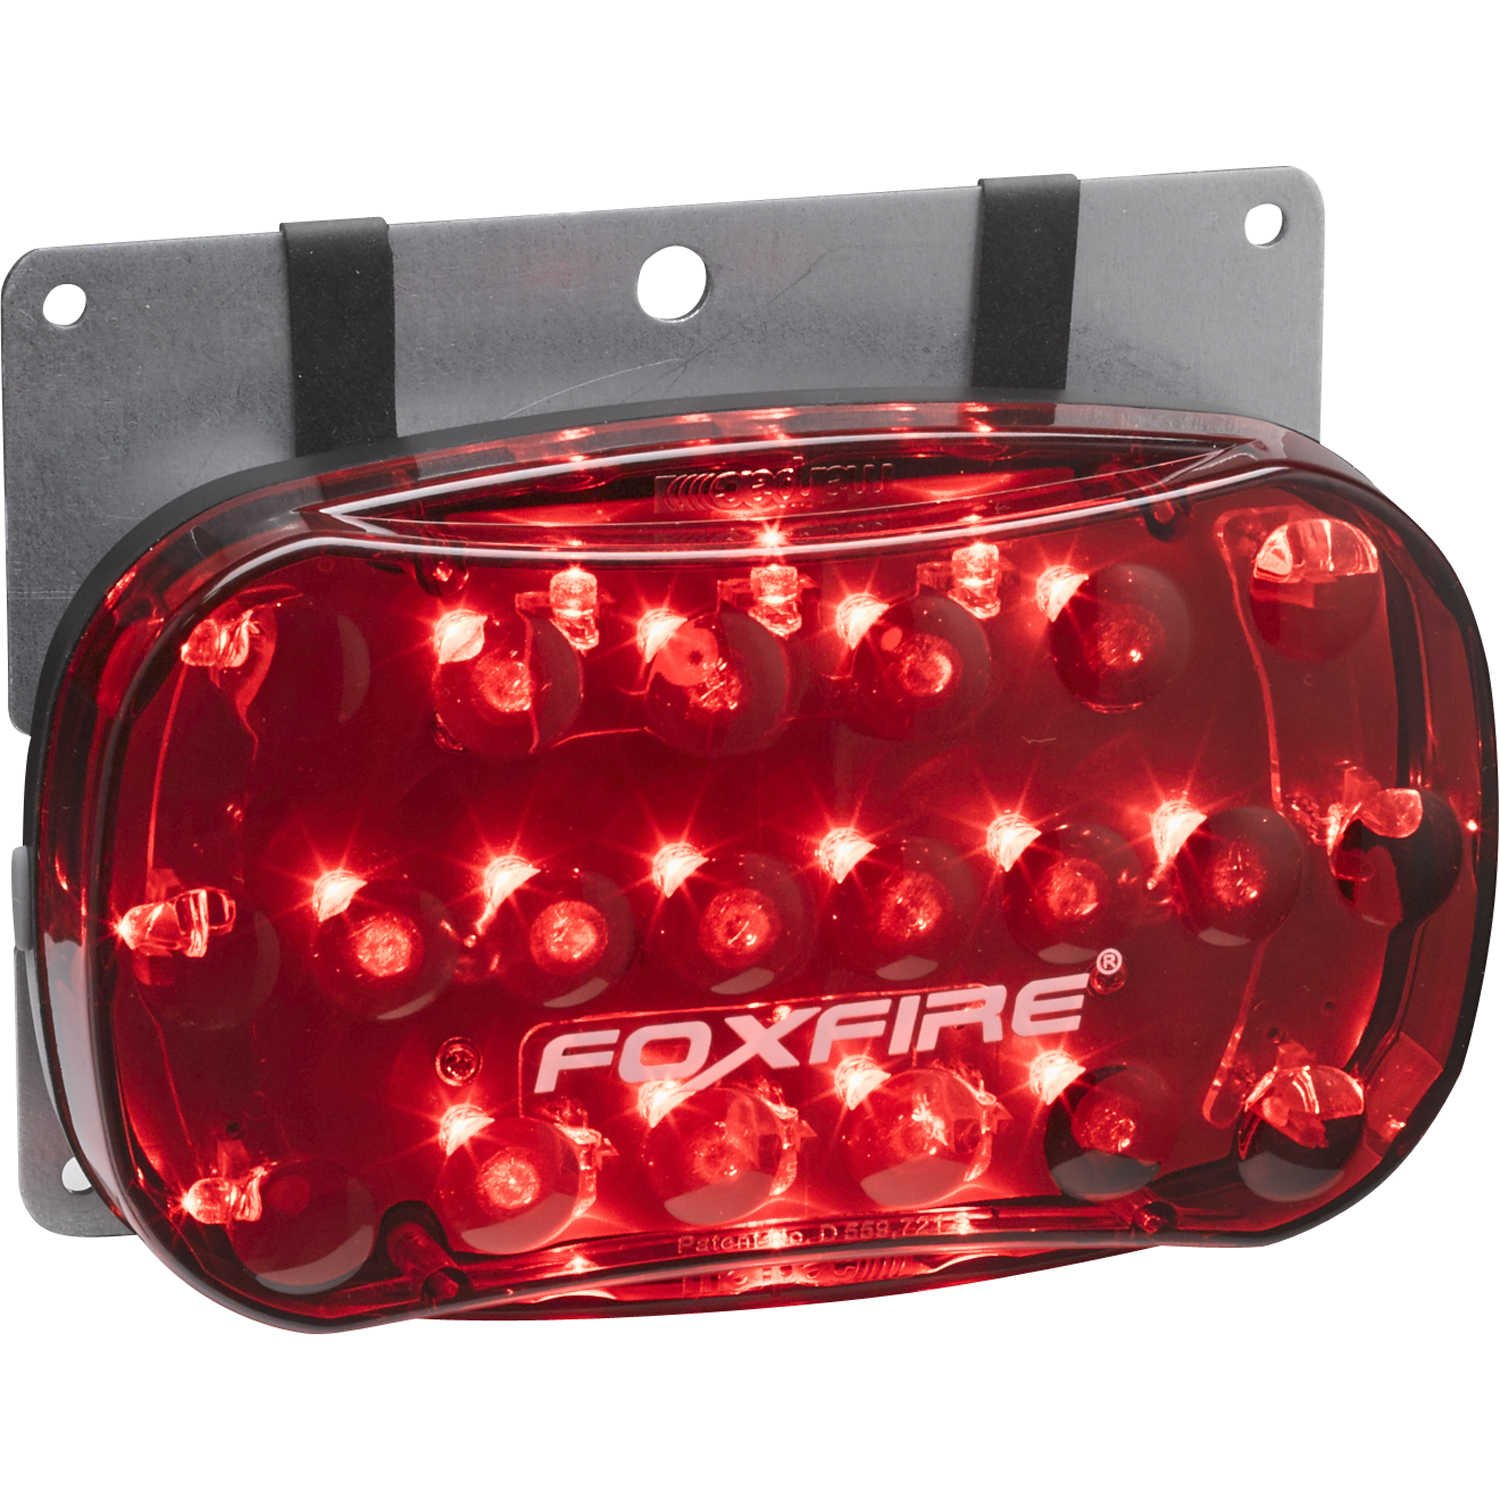 FoxFire Logger Lite Portable Signal Light by Marpac